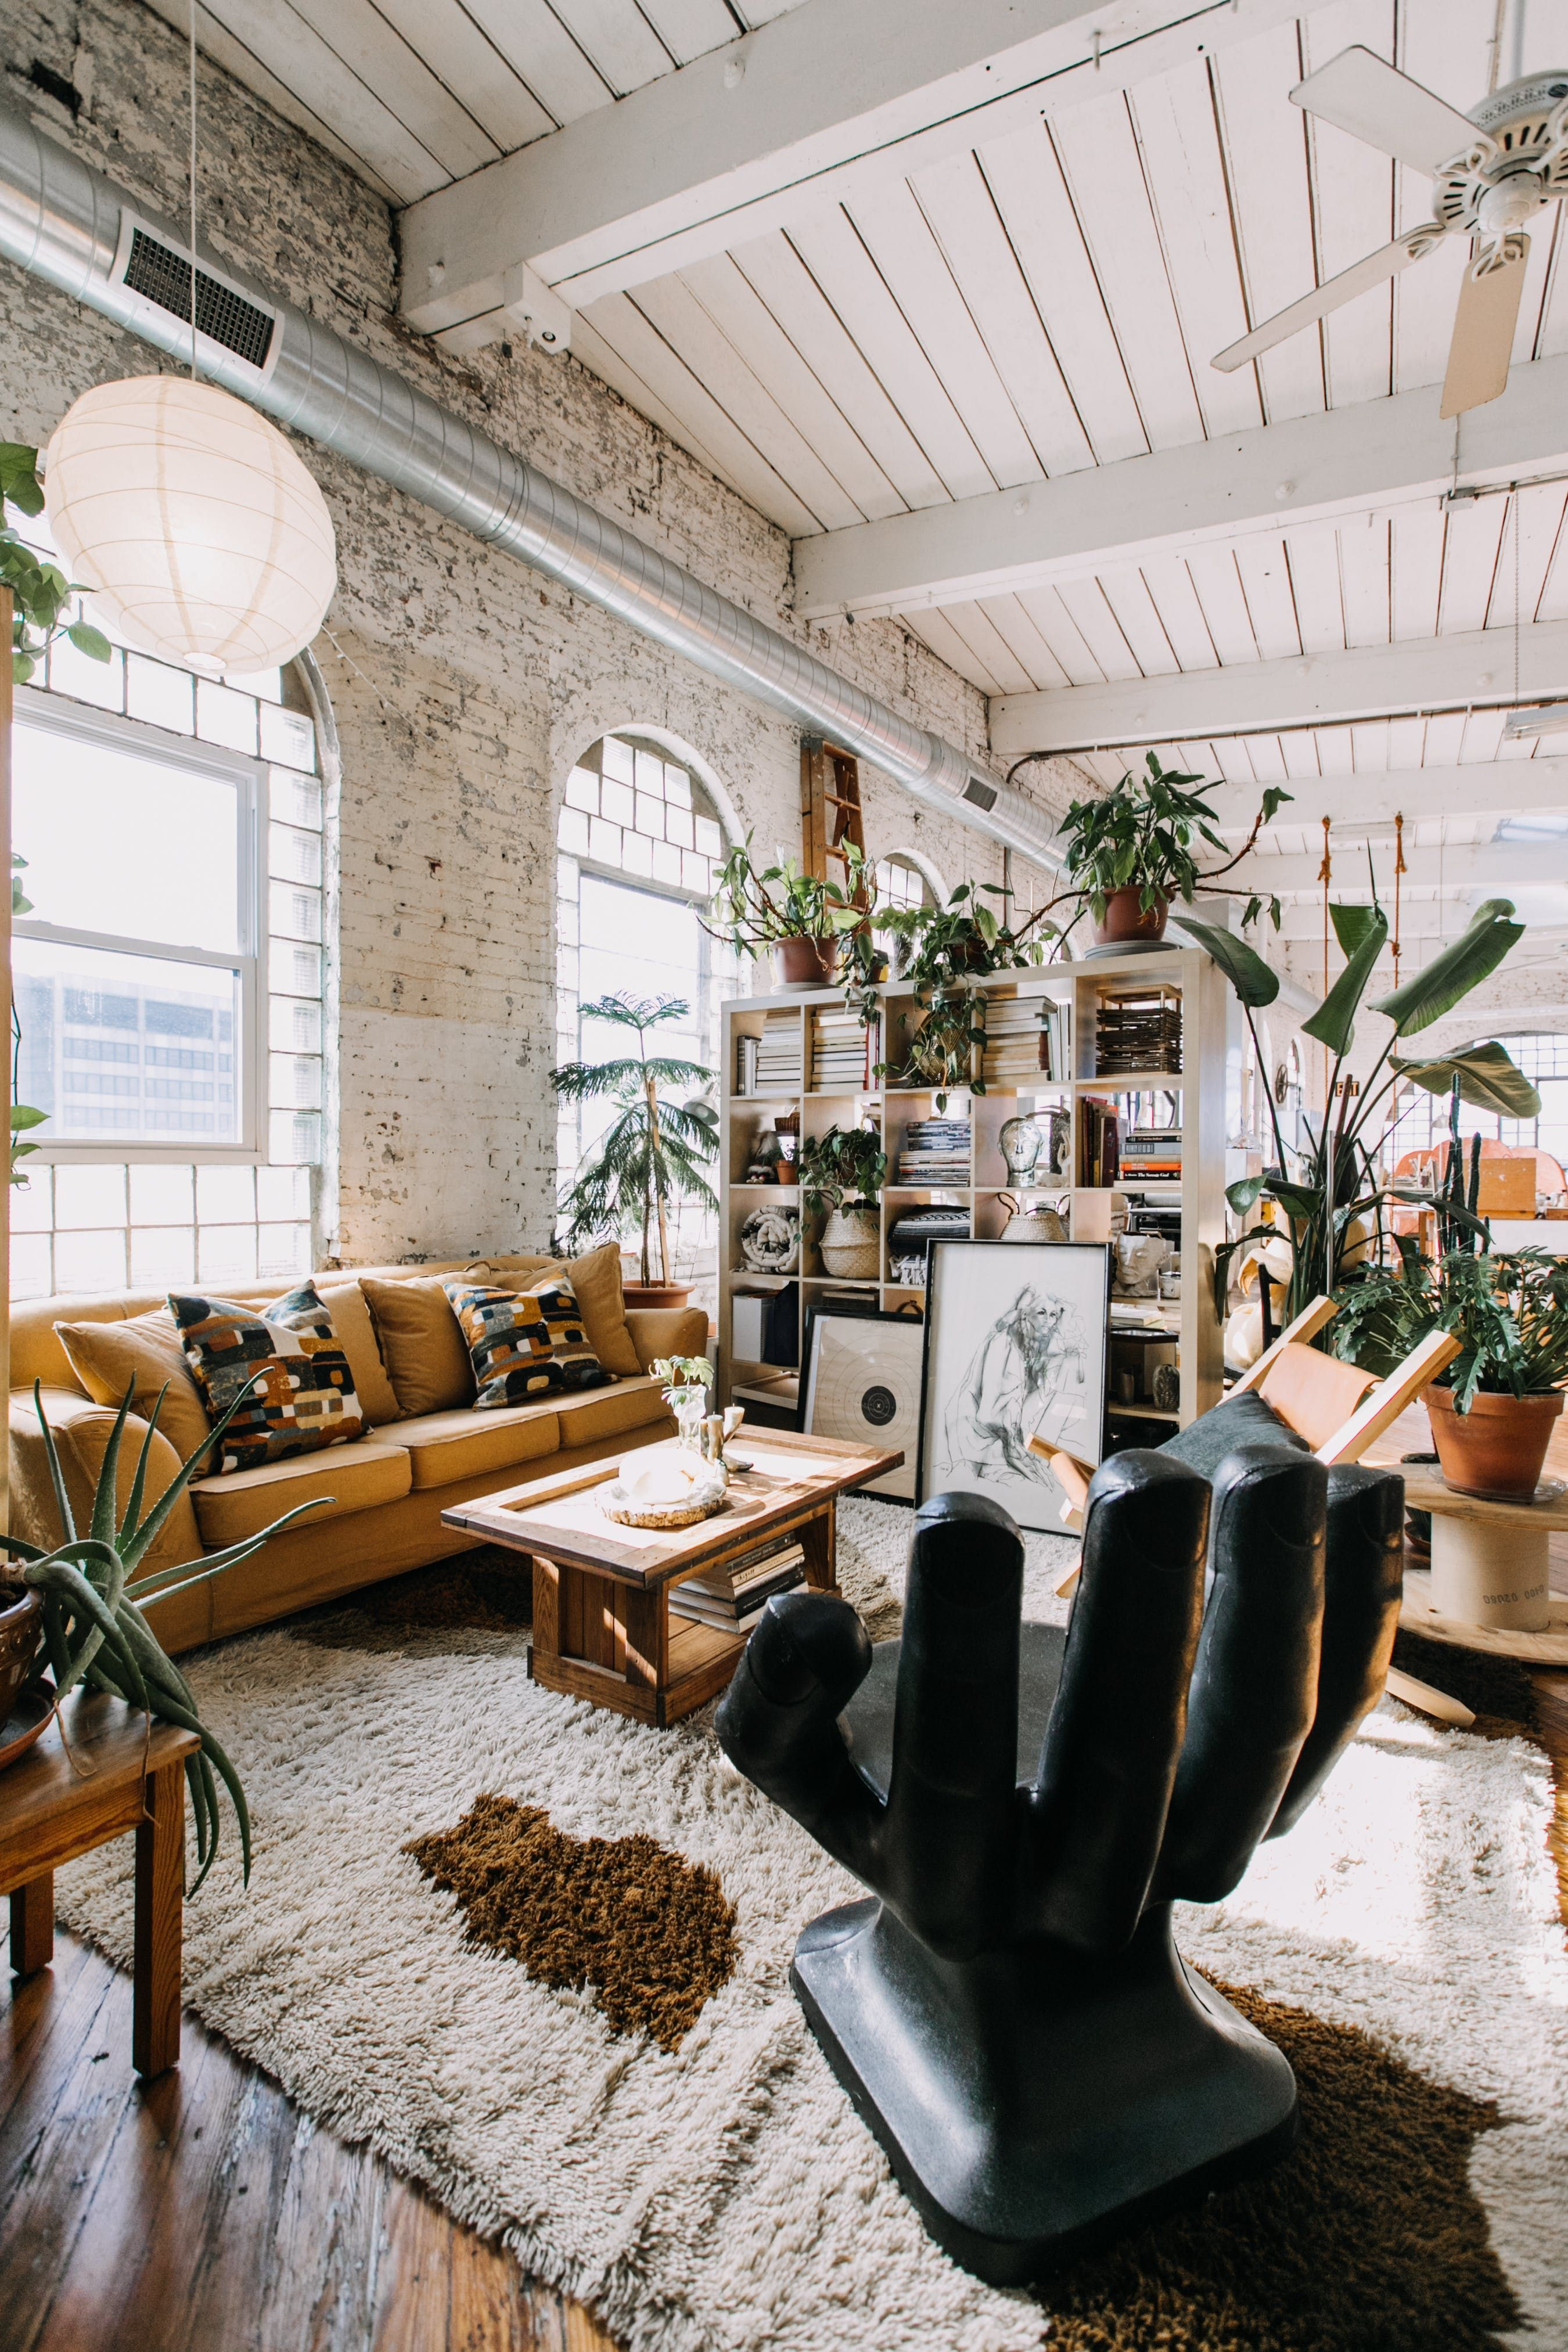 A Sunny, Stunning Loft Apartment in an Old Textile Factory #Apartment #Factory #HomeDecorations #Loft